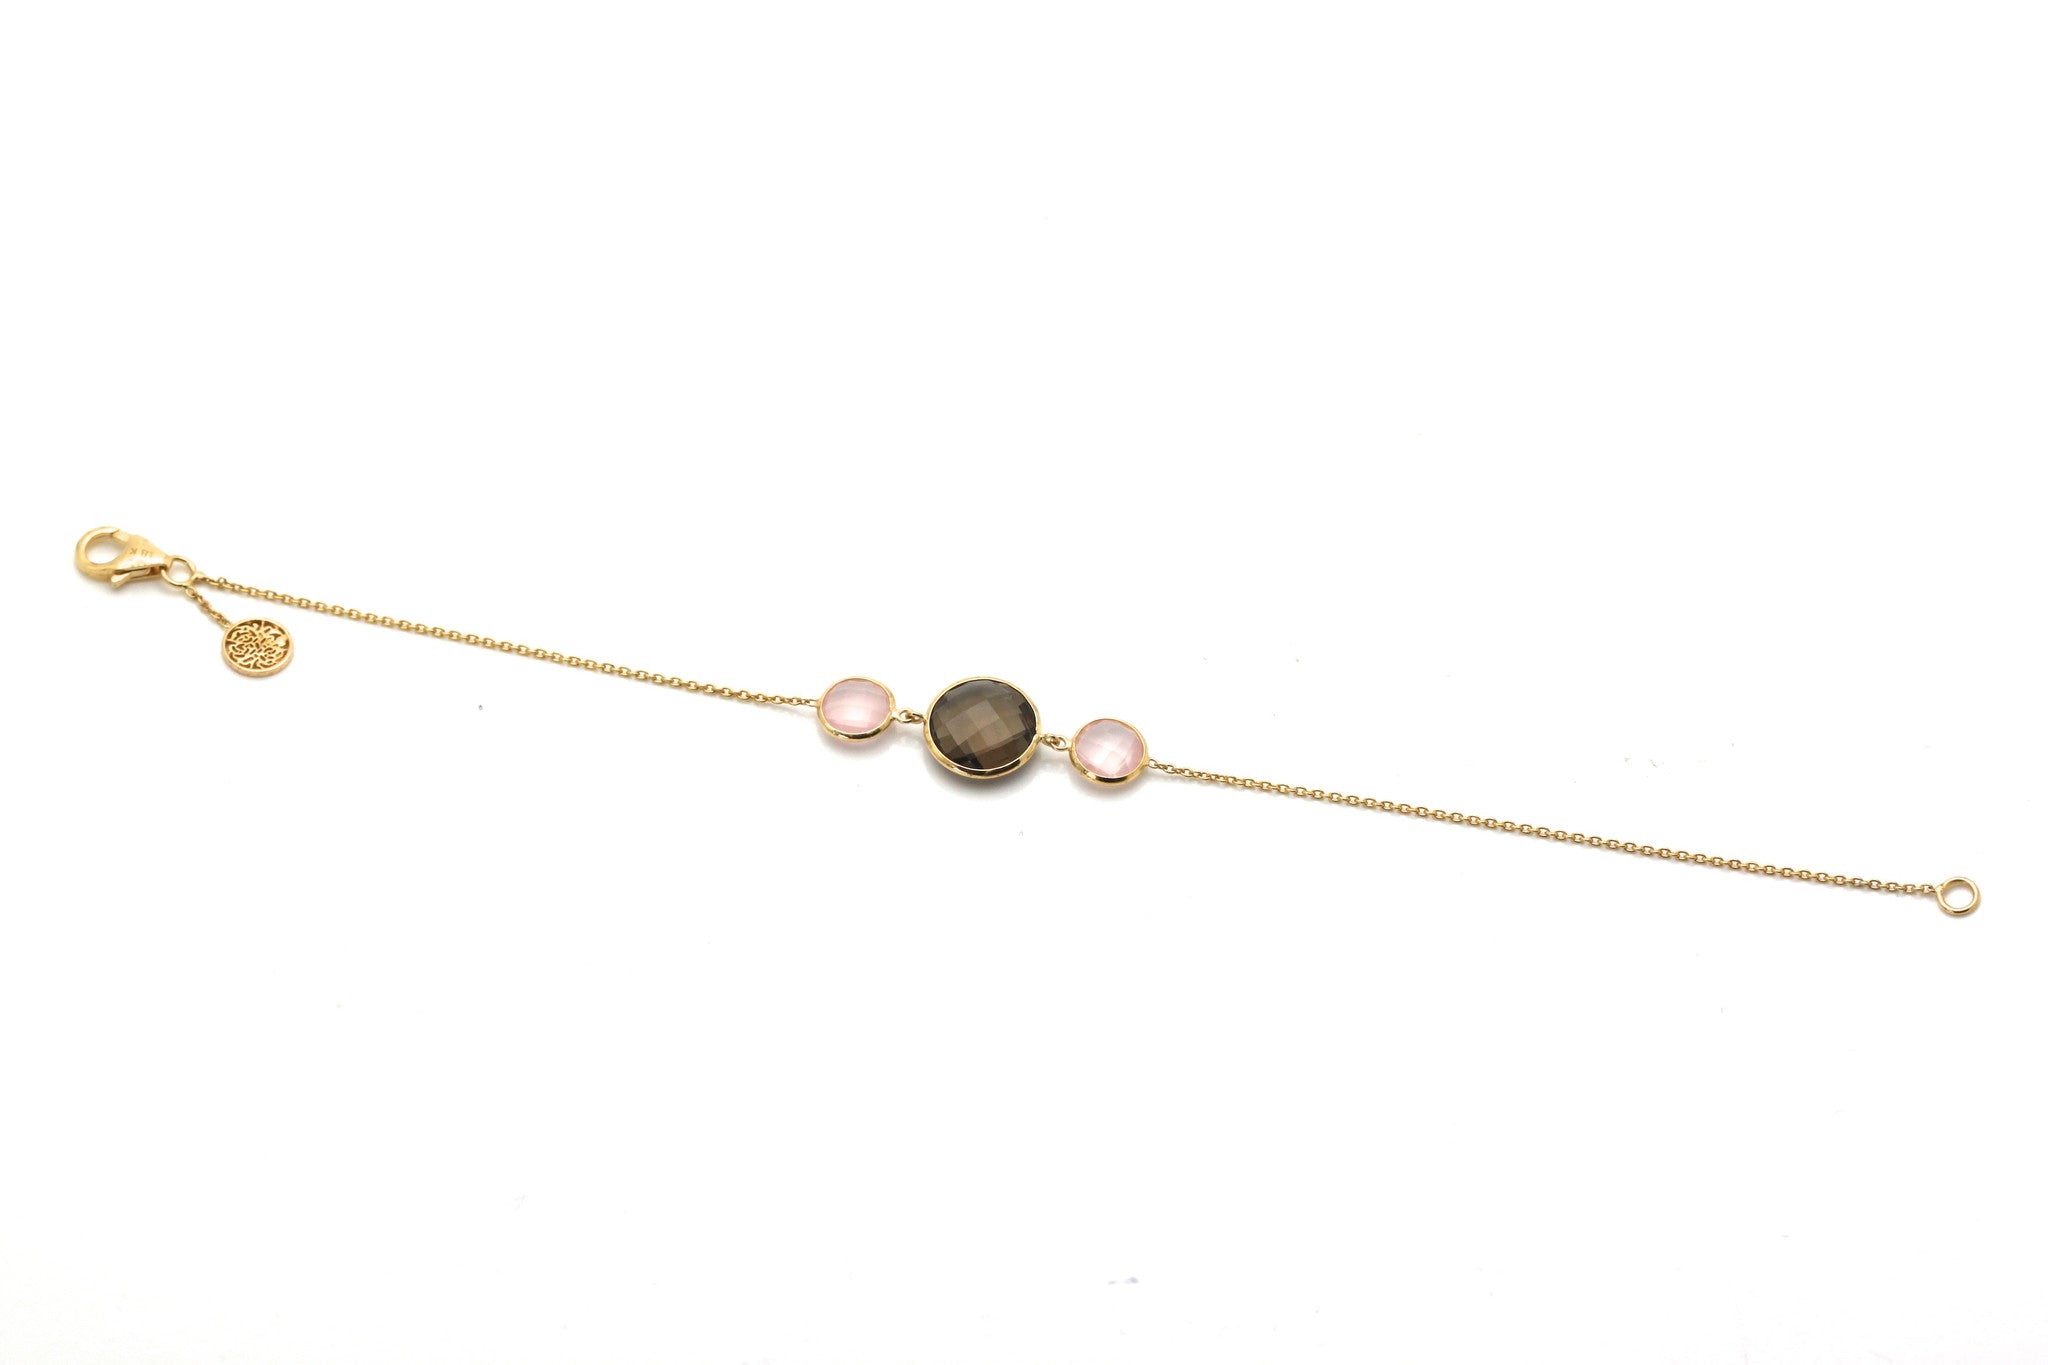 18k Yellow Gold Bracelet With Rose Quartz & Smokey Quartz